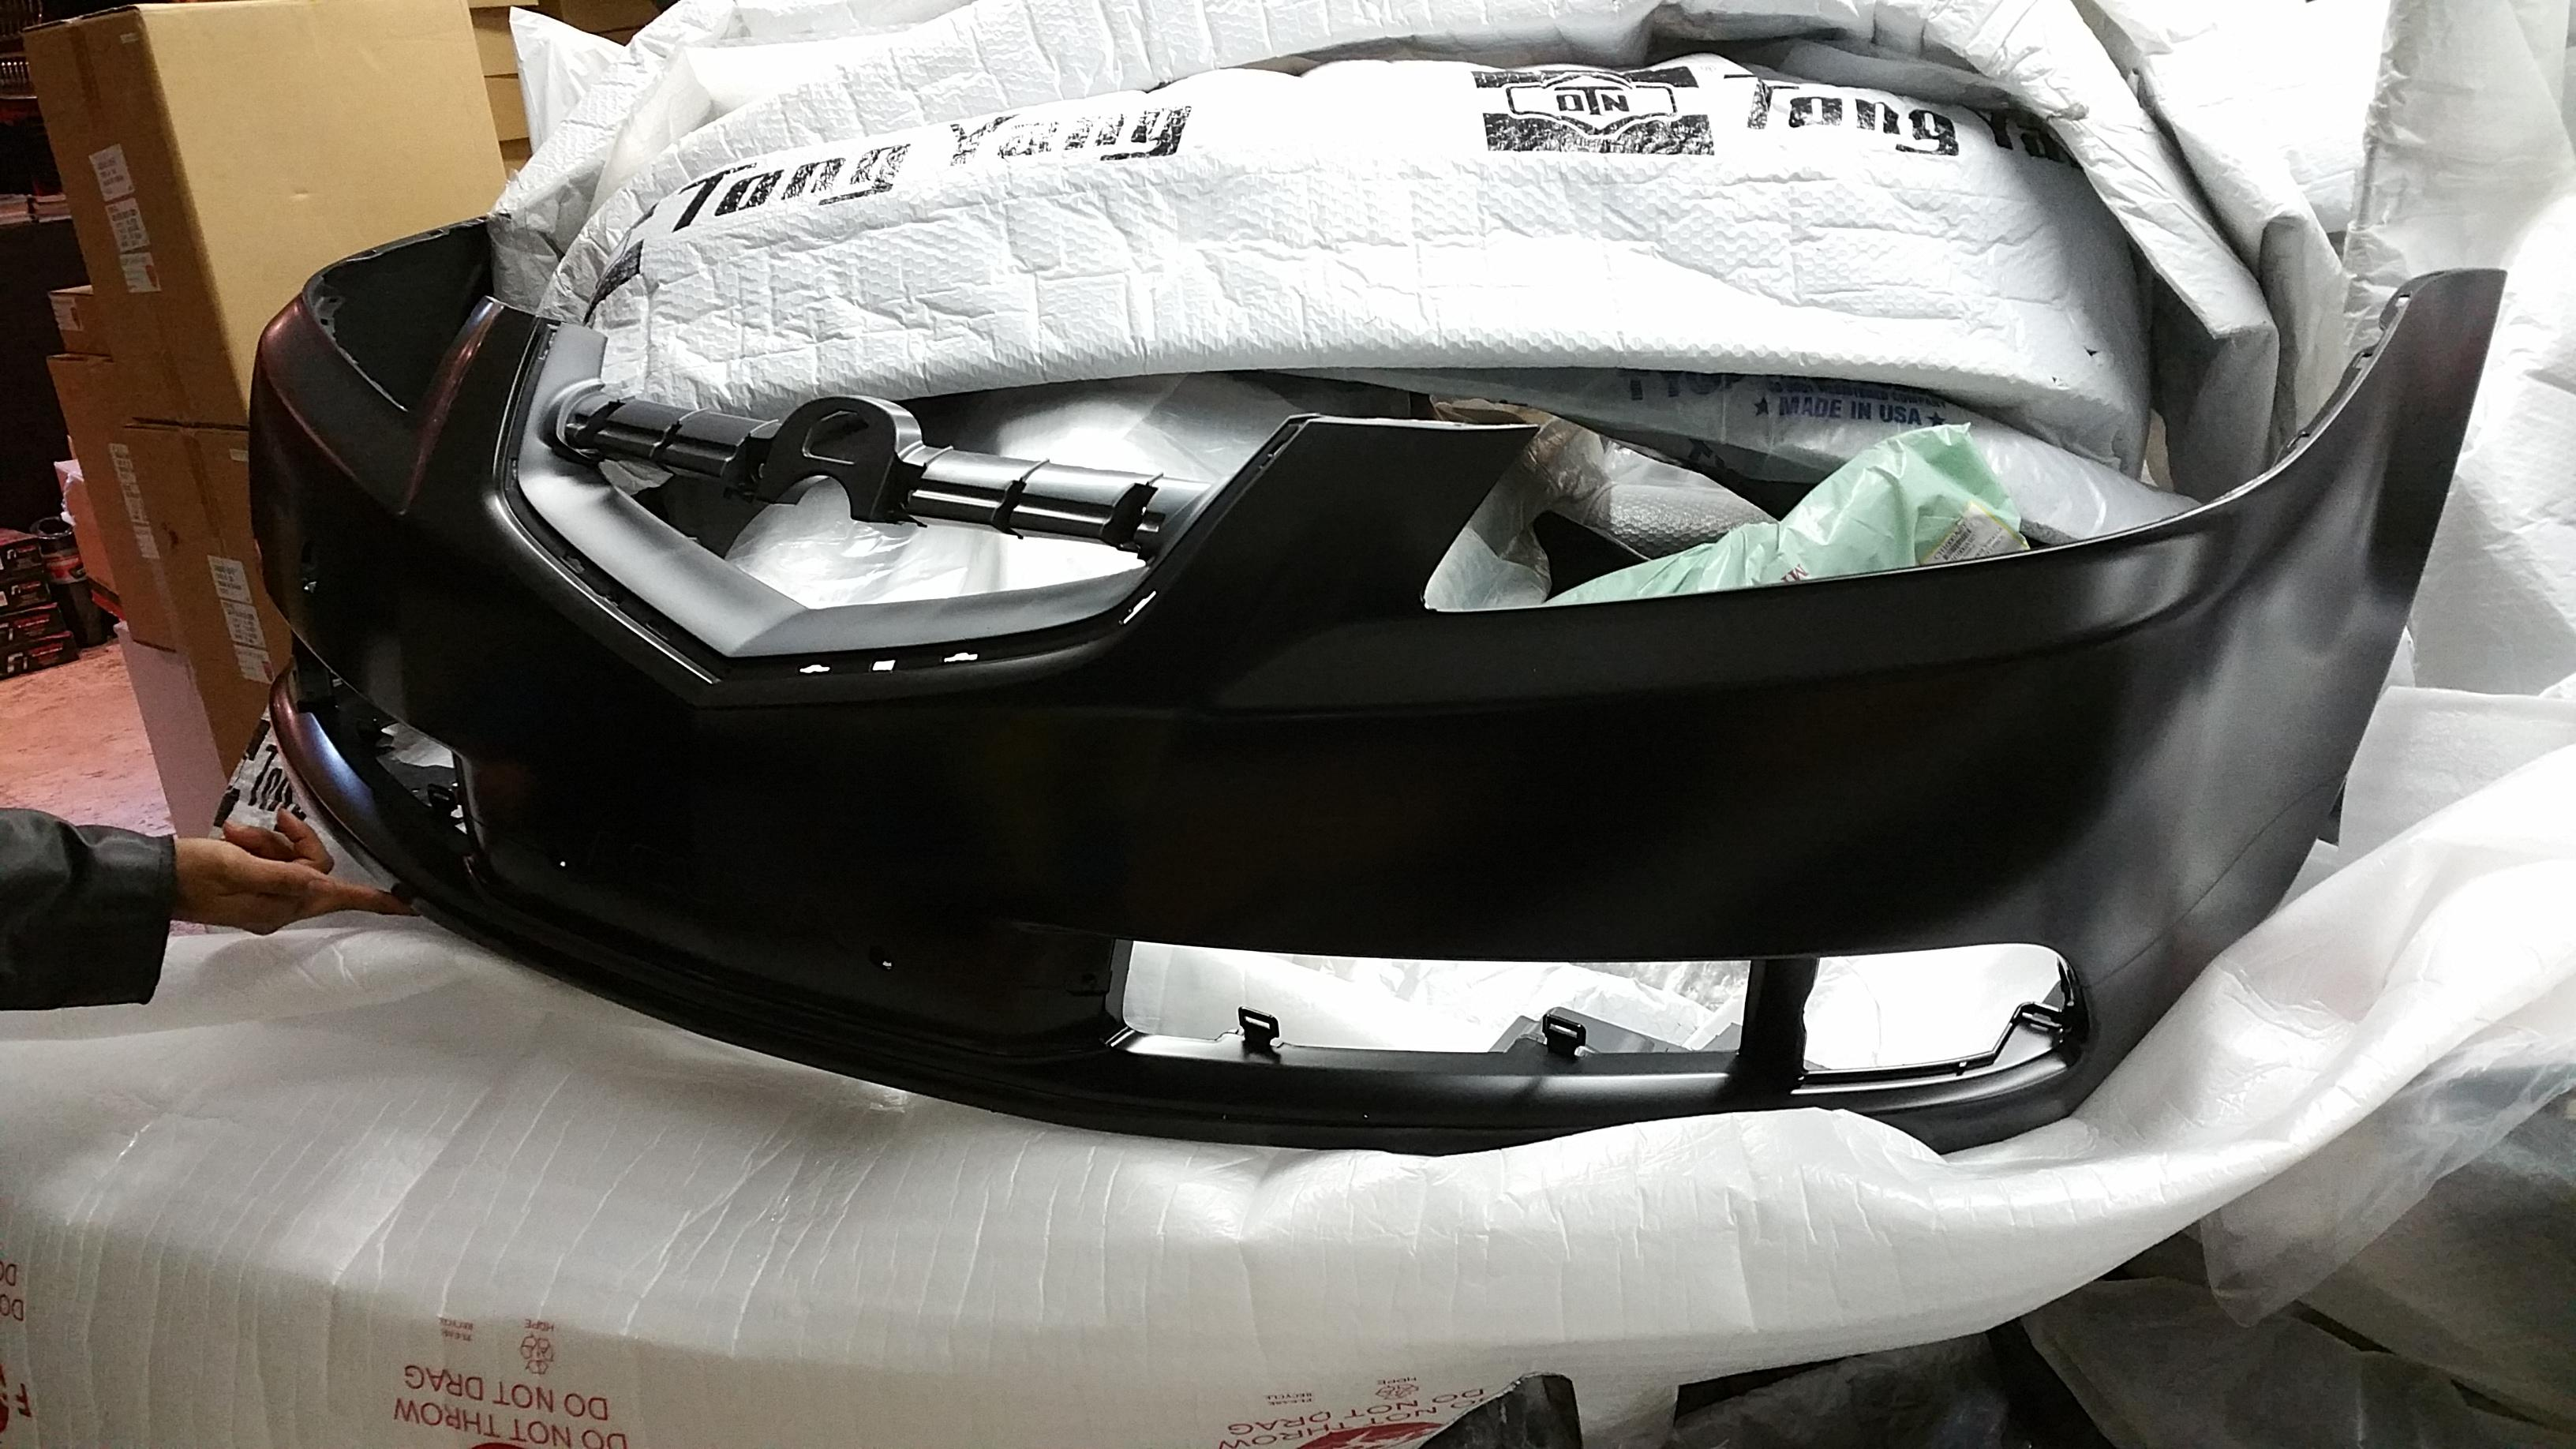 ACURA TL OEM GENUINE TYPES FRONT BUMPER Extreme Parts - Acura tl bumper